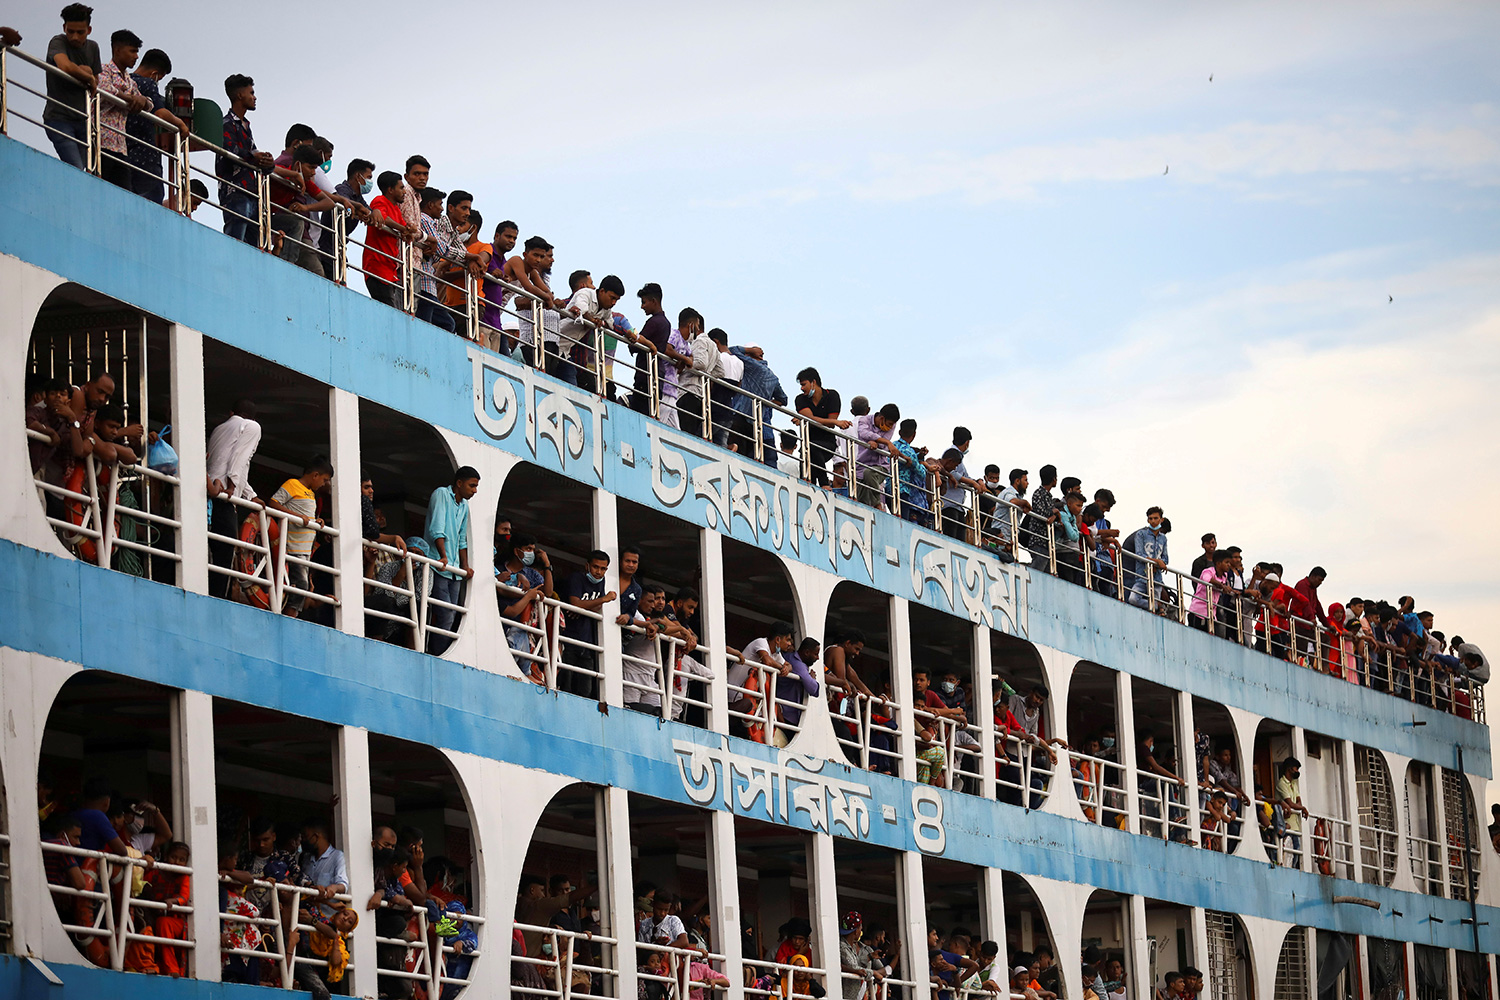 The photo shows the ferry from the side with all balconies jammed with people, most not wearing masks.